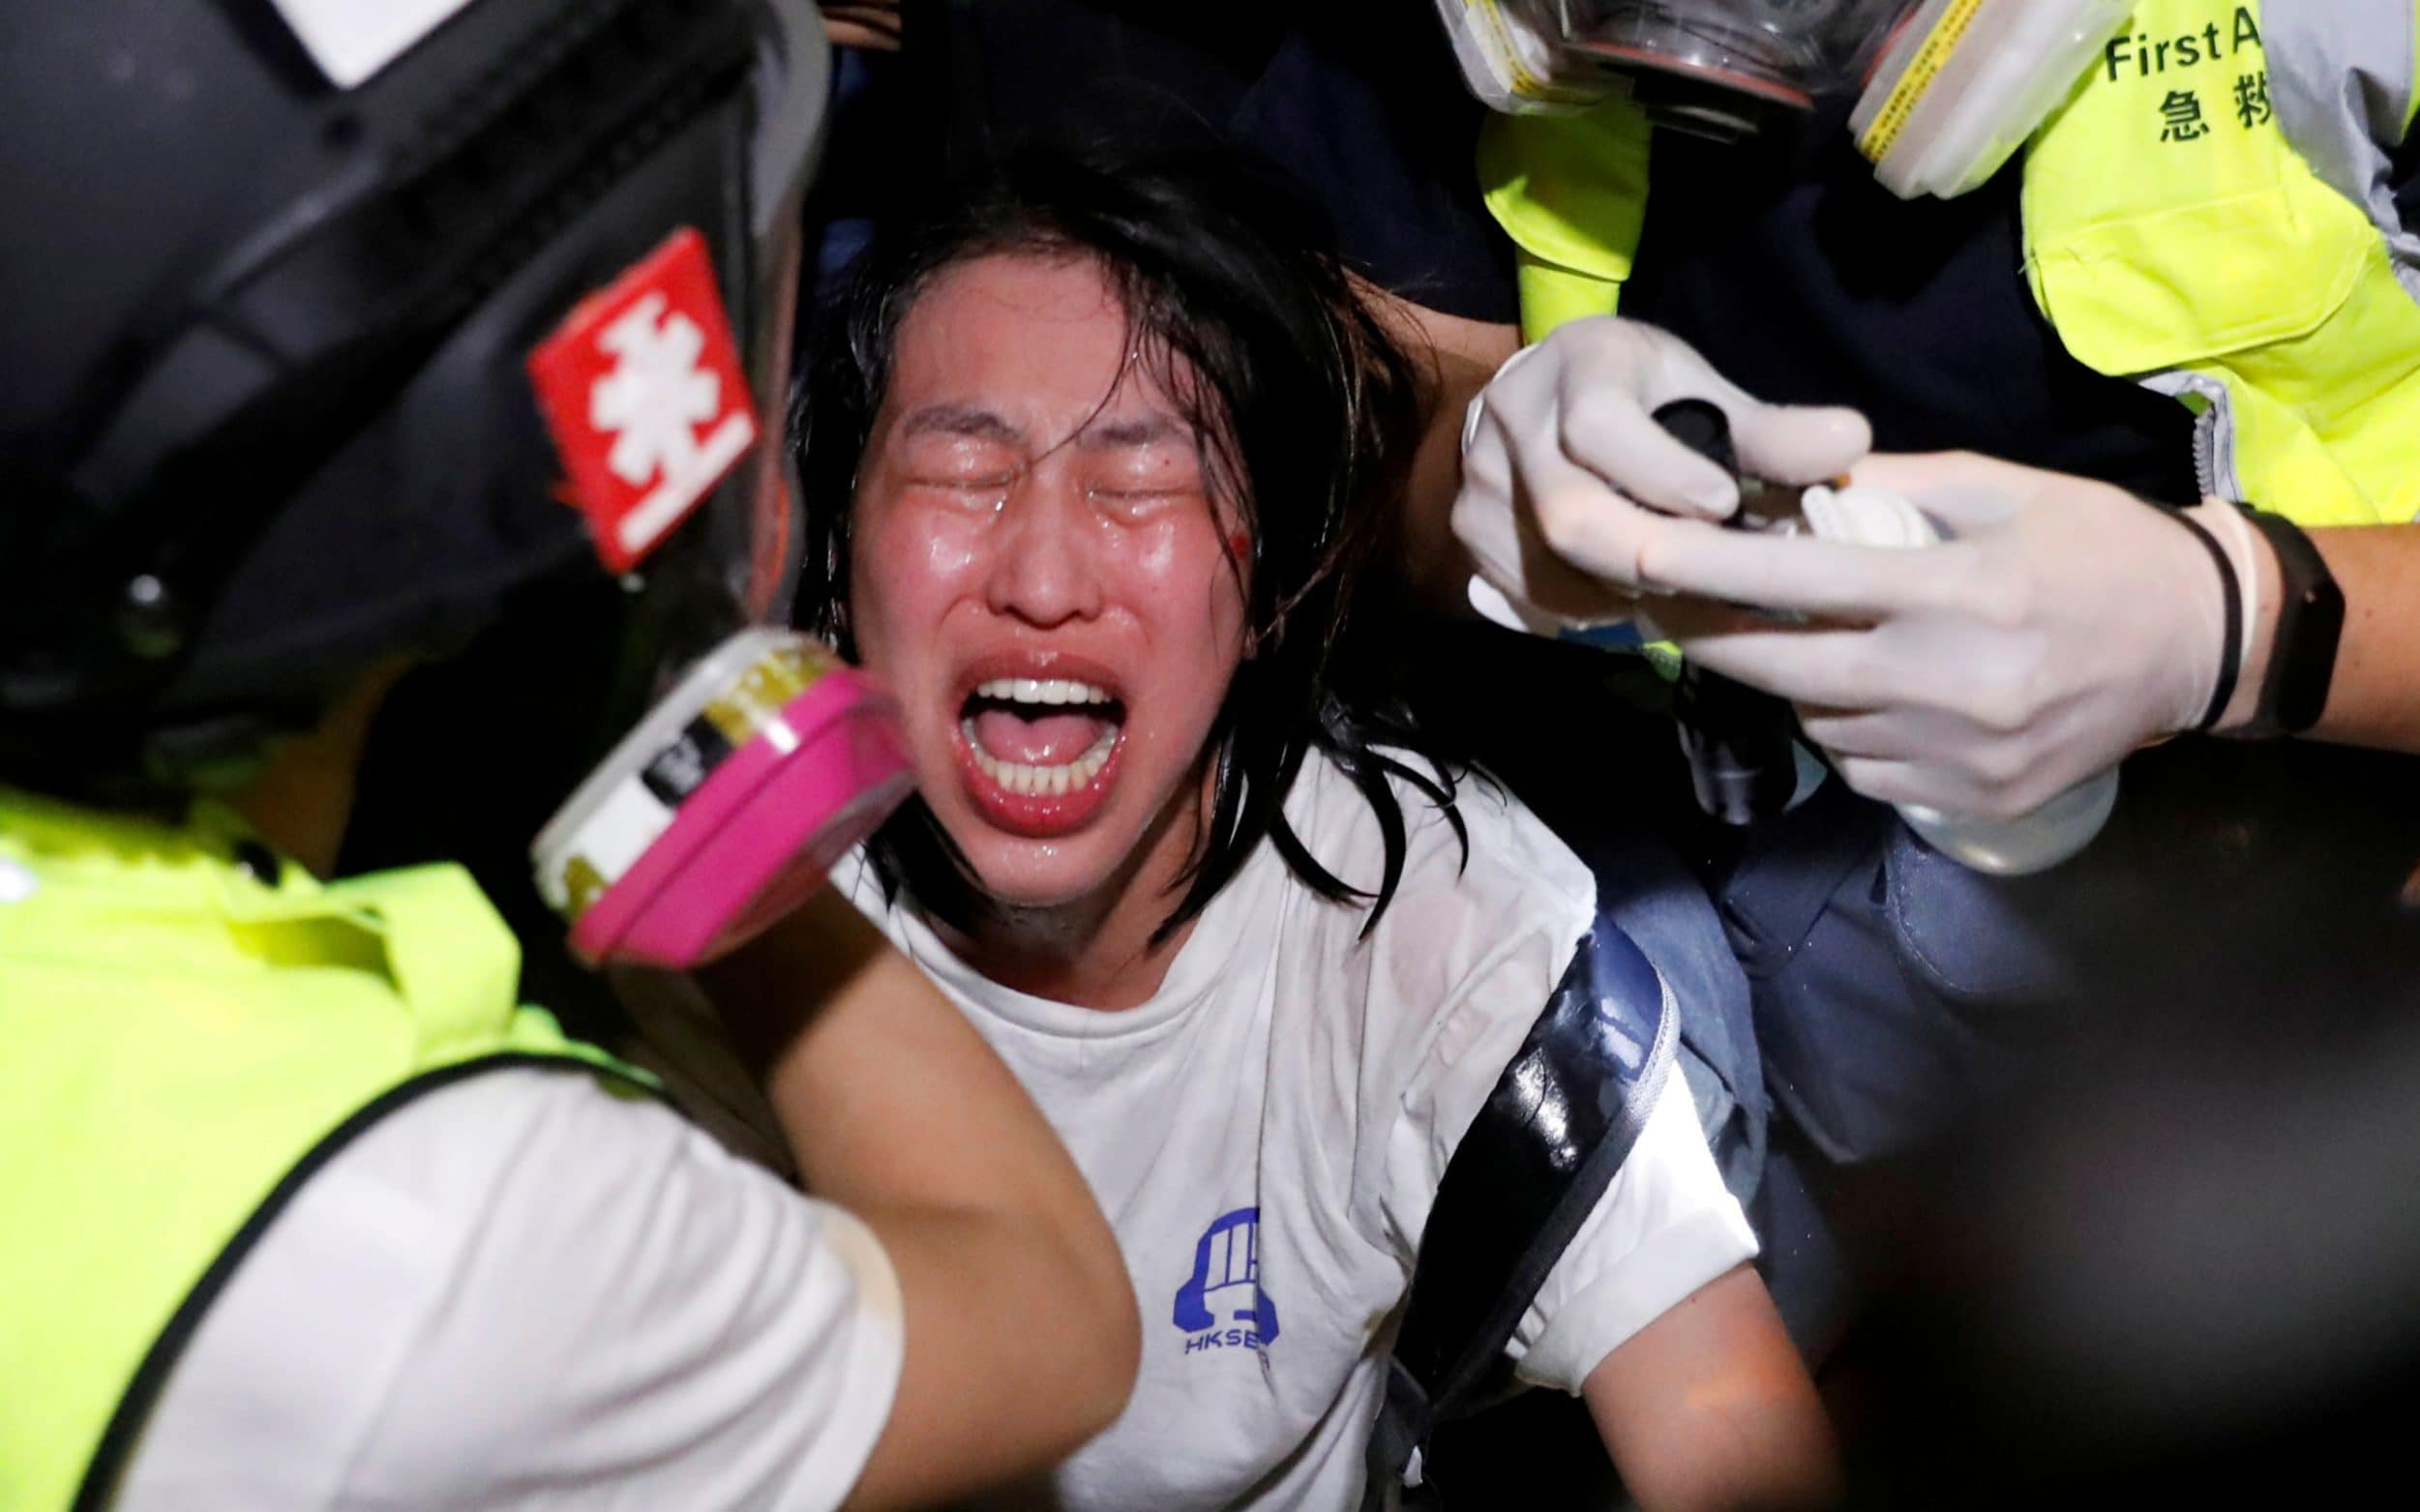 China warns it could unilaterally impose emergency rule on Hong Kong